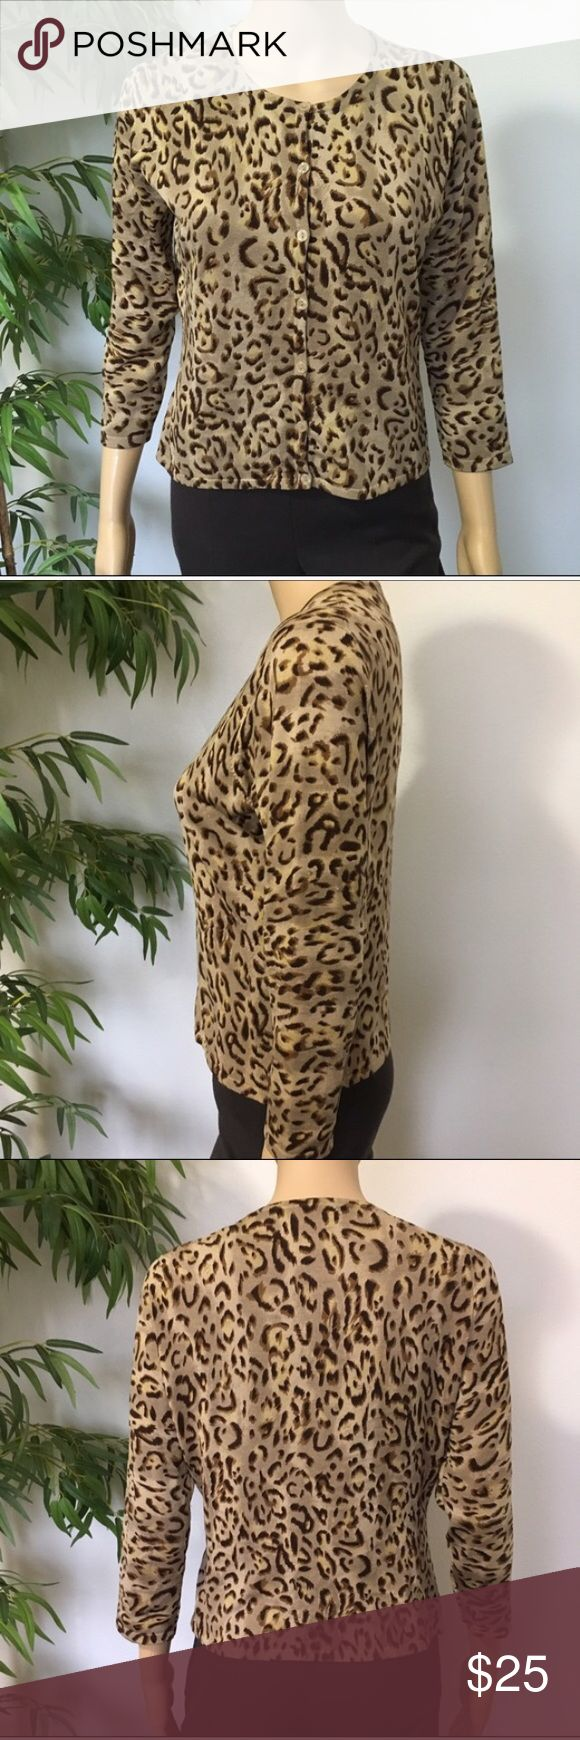 INC Animal Print Cardigan sis M New with tags animal print cardigan size M INC International Concepts Tops